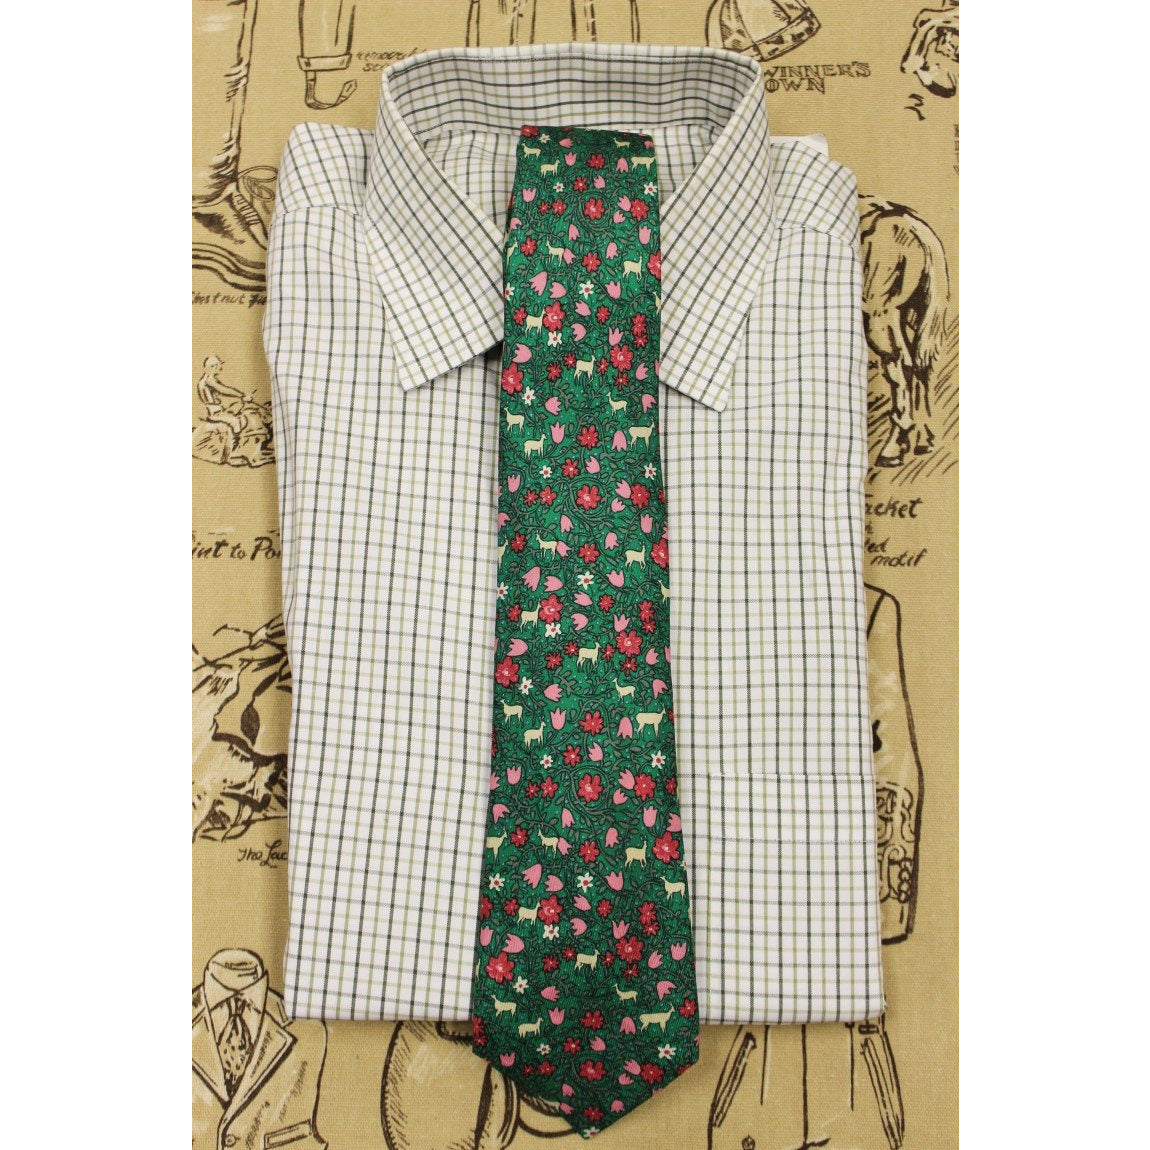 Hermes of Paris Floral Print Tie